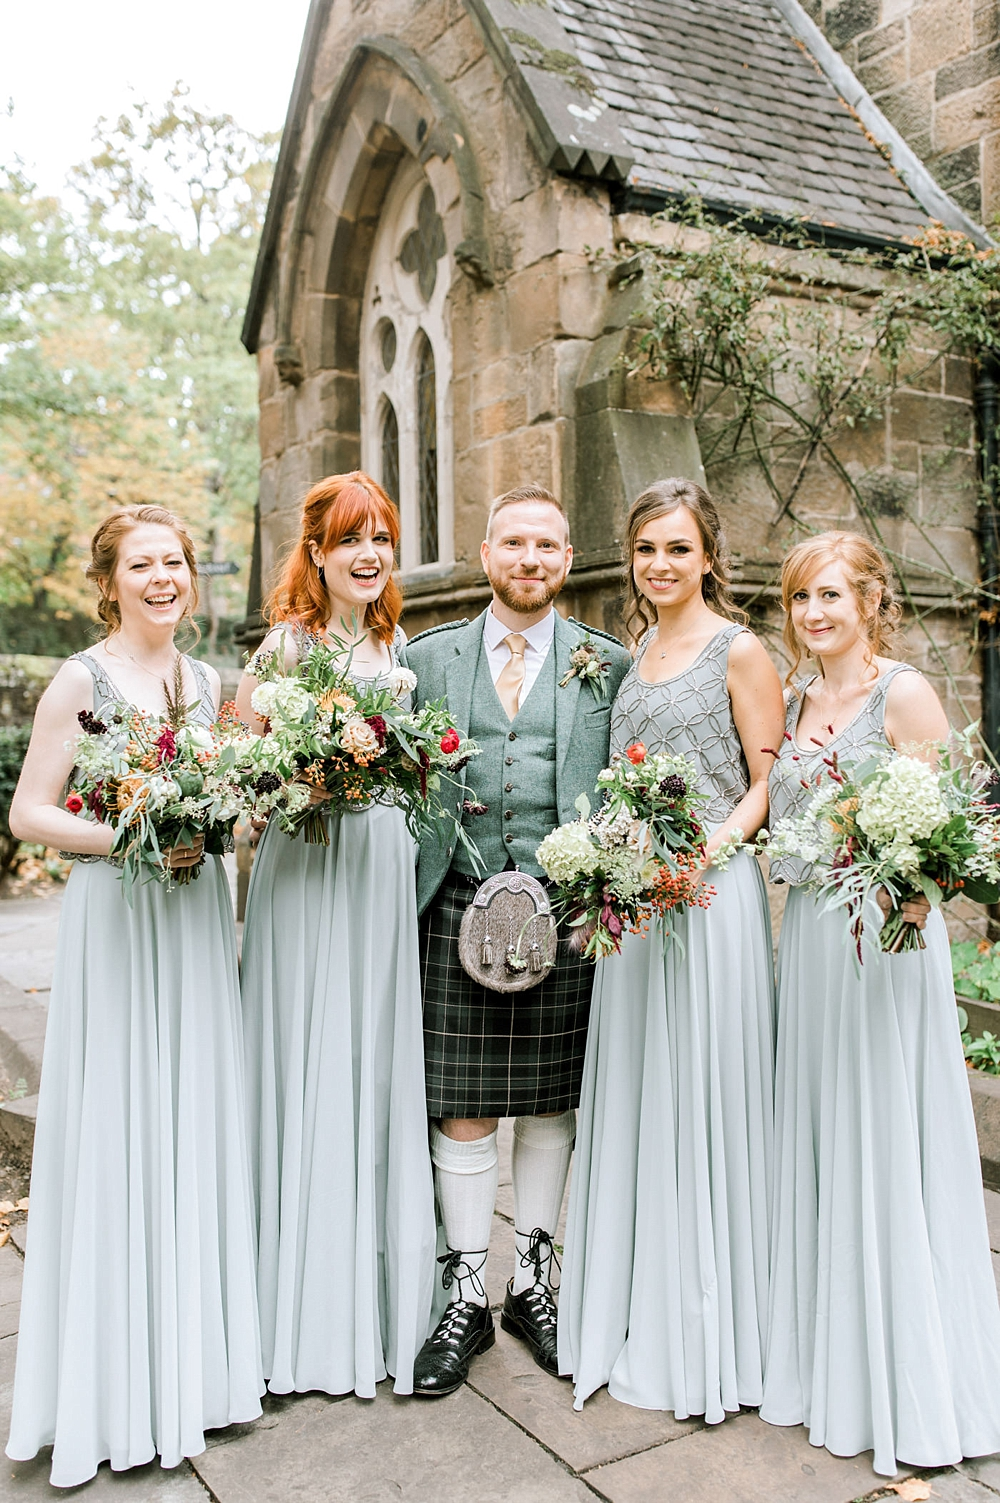 Autumn wedding at Cottiers 192.jpg